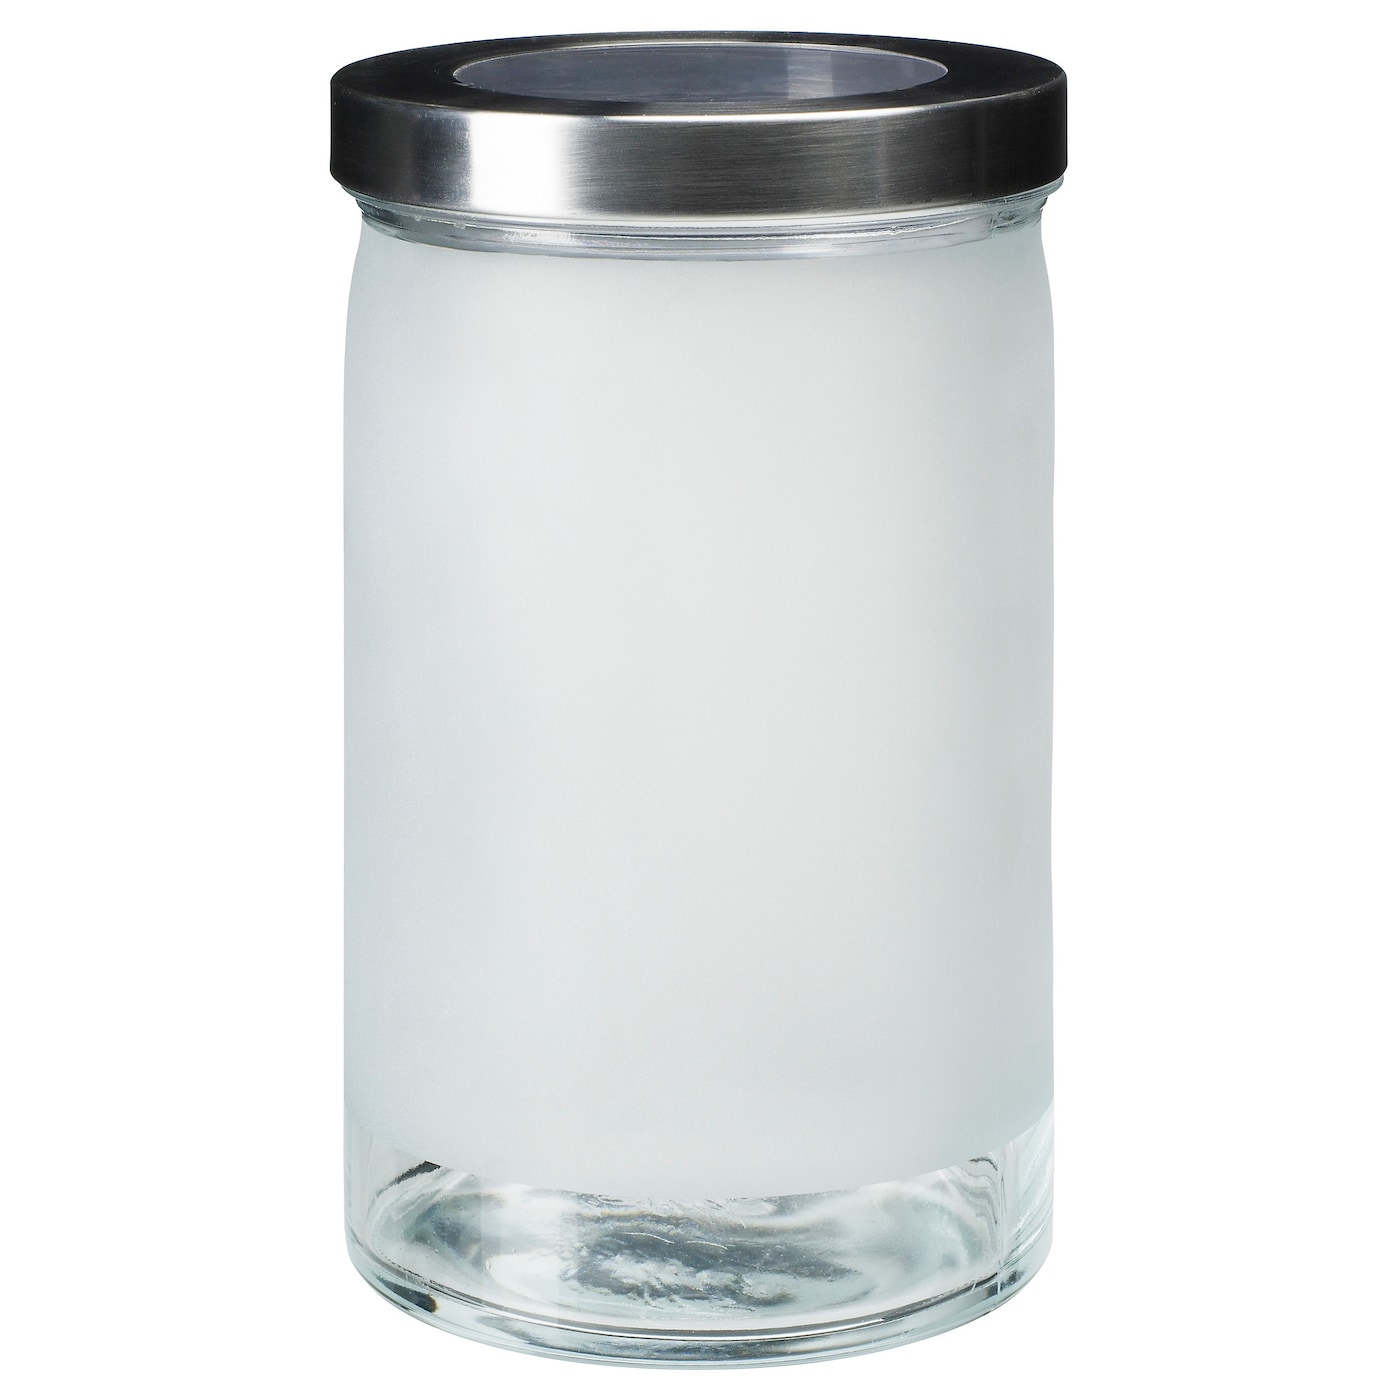 DROPPAR Jar With Lid Frosted Glass/stainless Steel 1.8 L